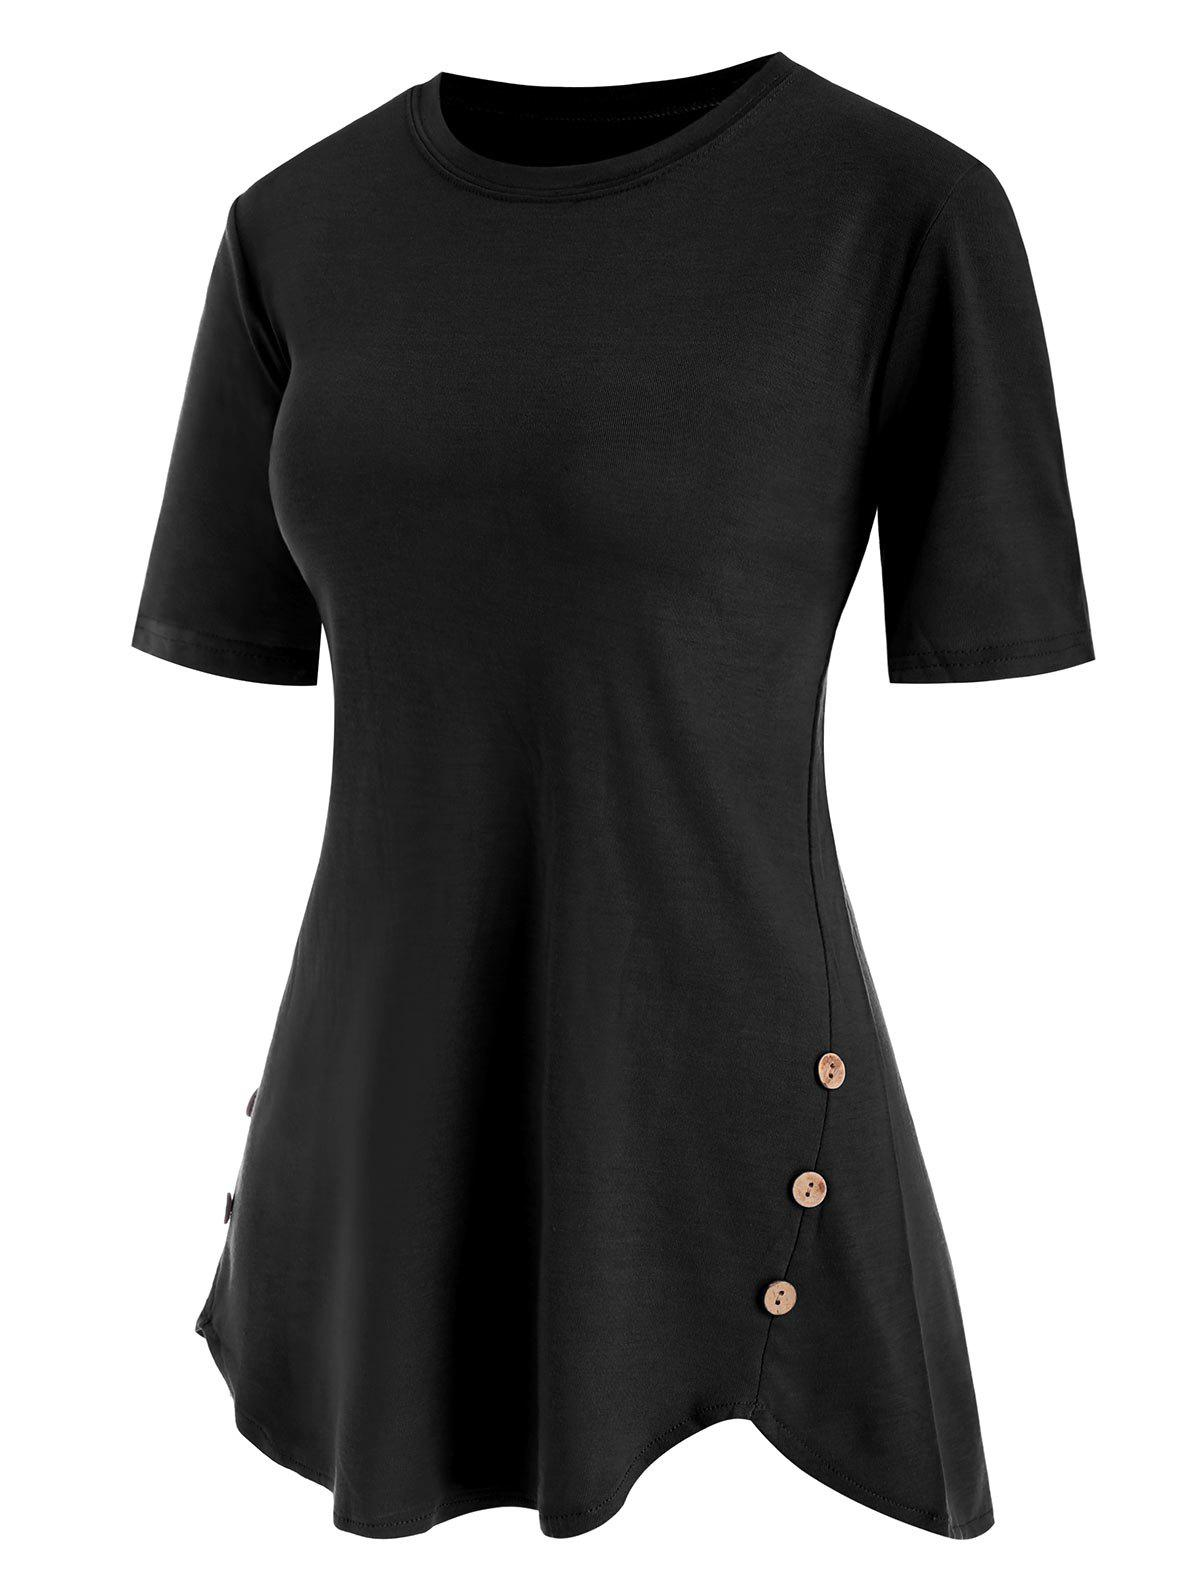 Buttoned Hem Tunic Top - BLACK M